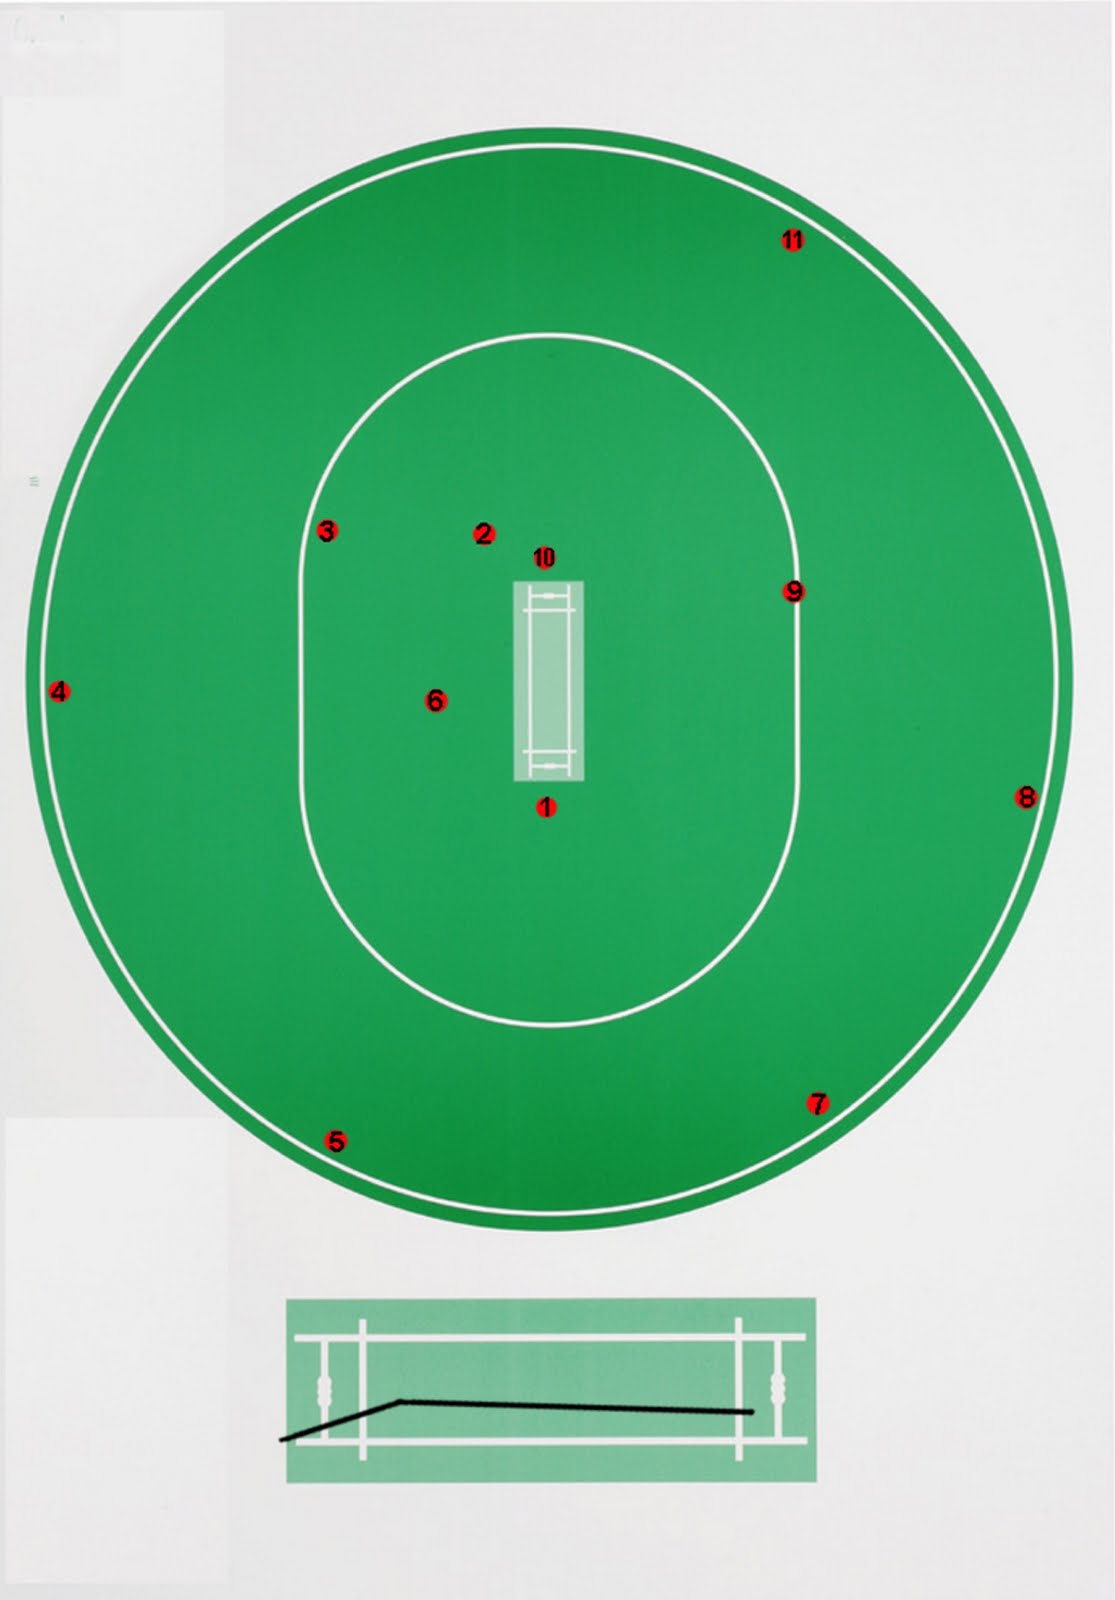 small resolution of here s another warne field for t20 not a great deal of difference from the former post the only real difference is that the cover fielder is a lot closer